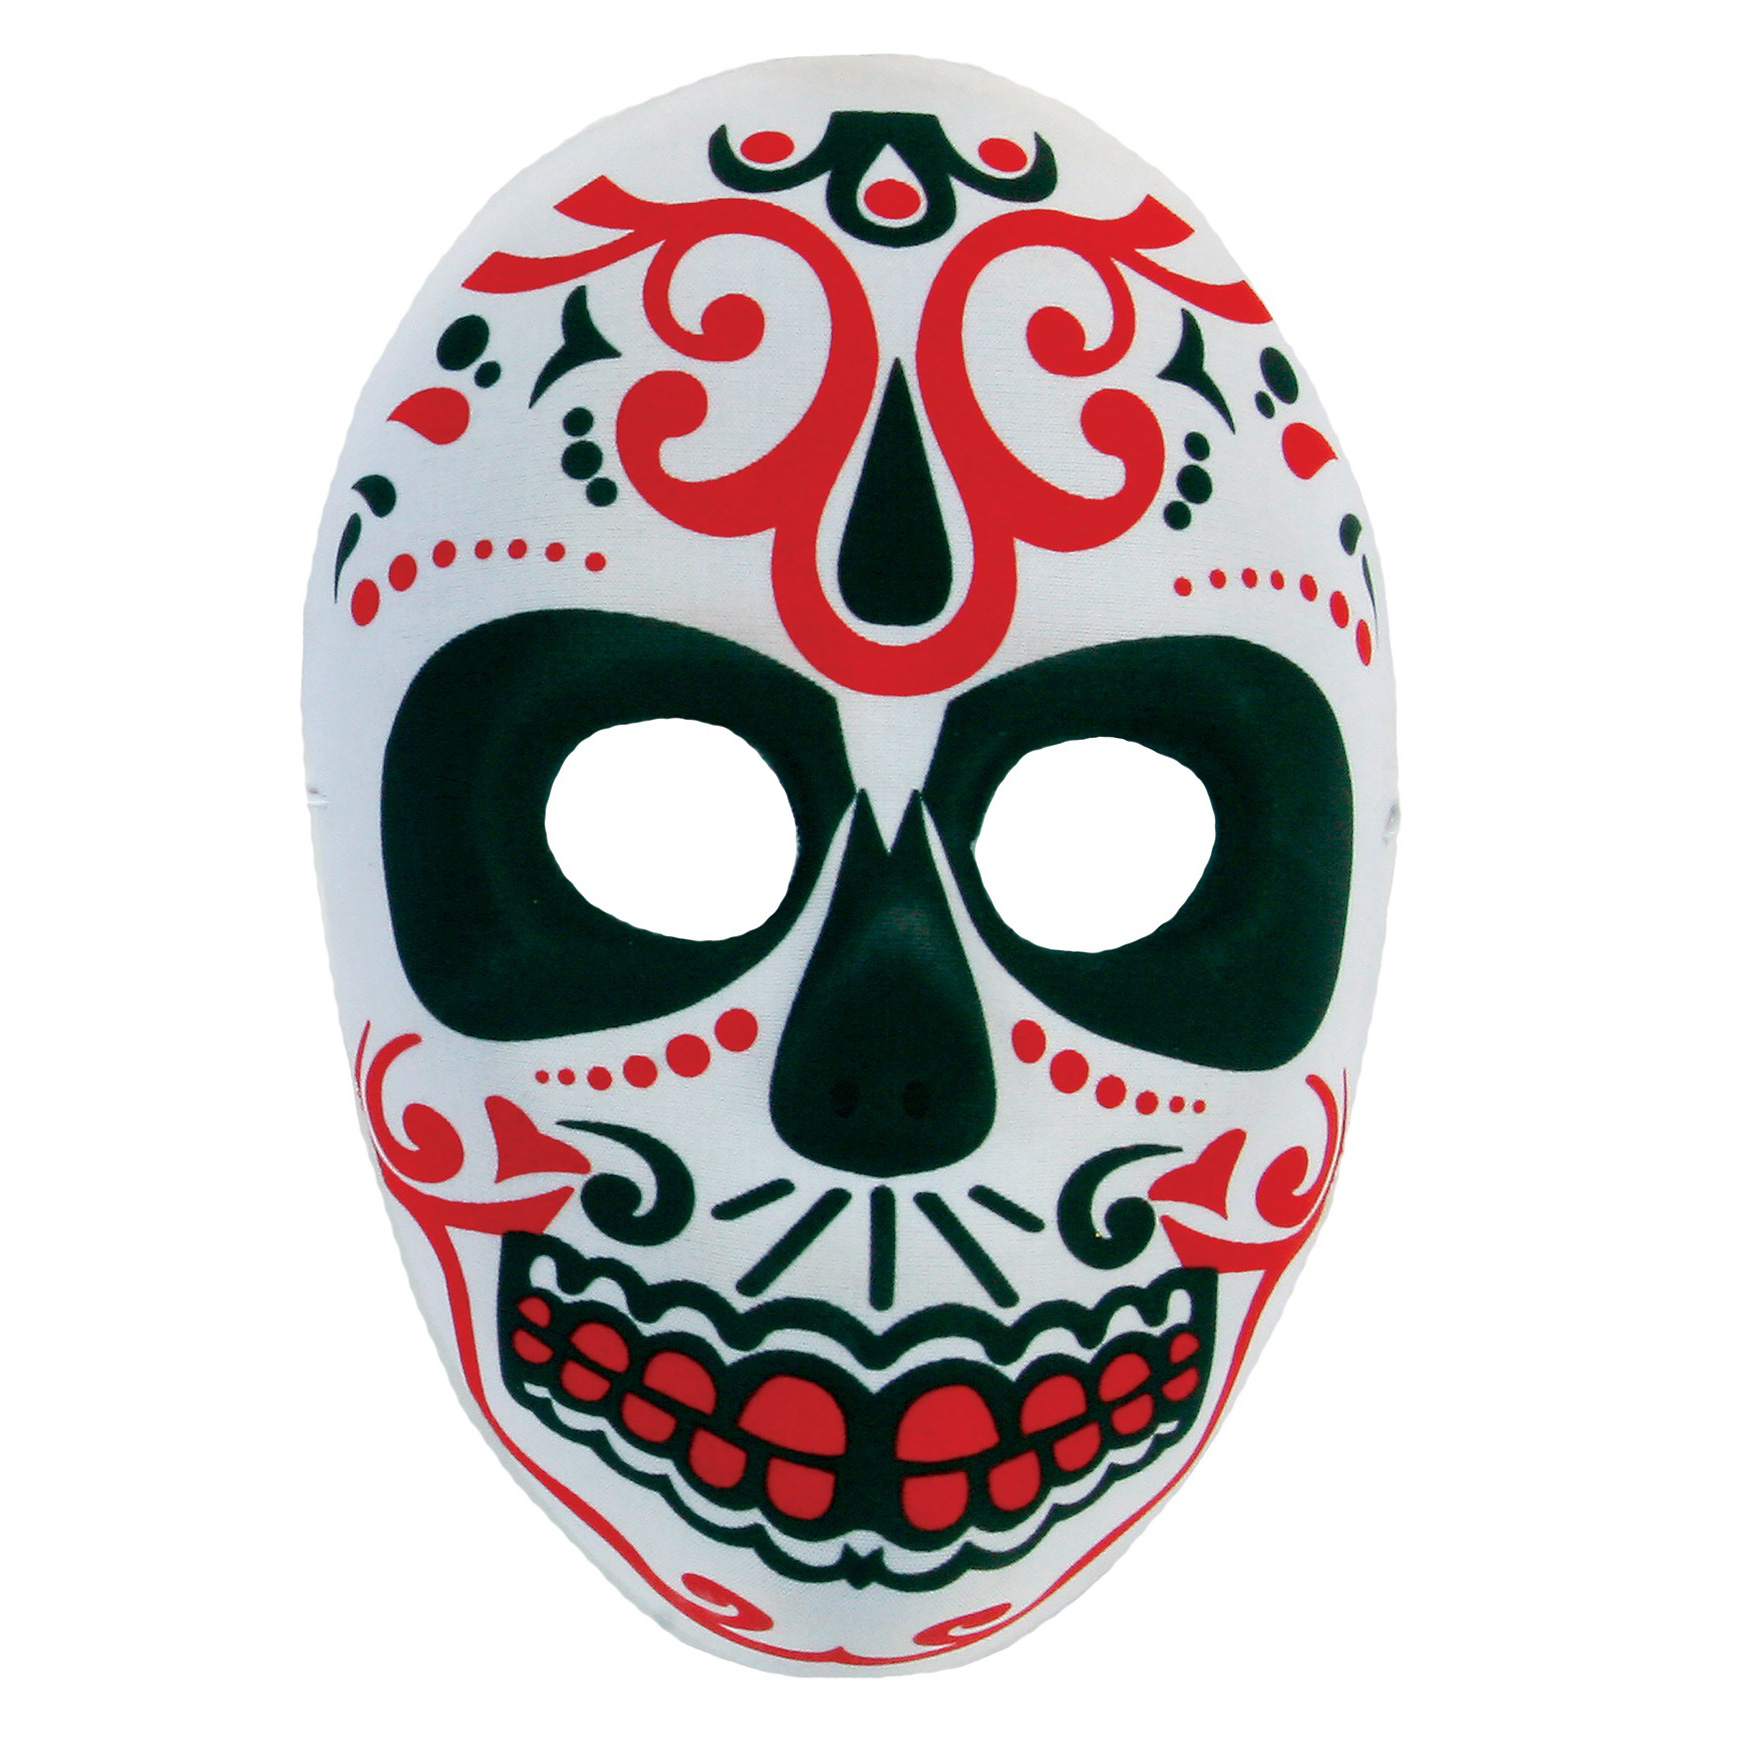 "Fun World Day of the Dead Sugar Skull Mask, One Size 10""x7"", White Red"